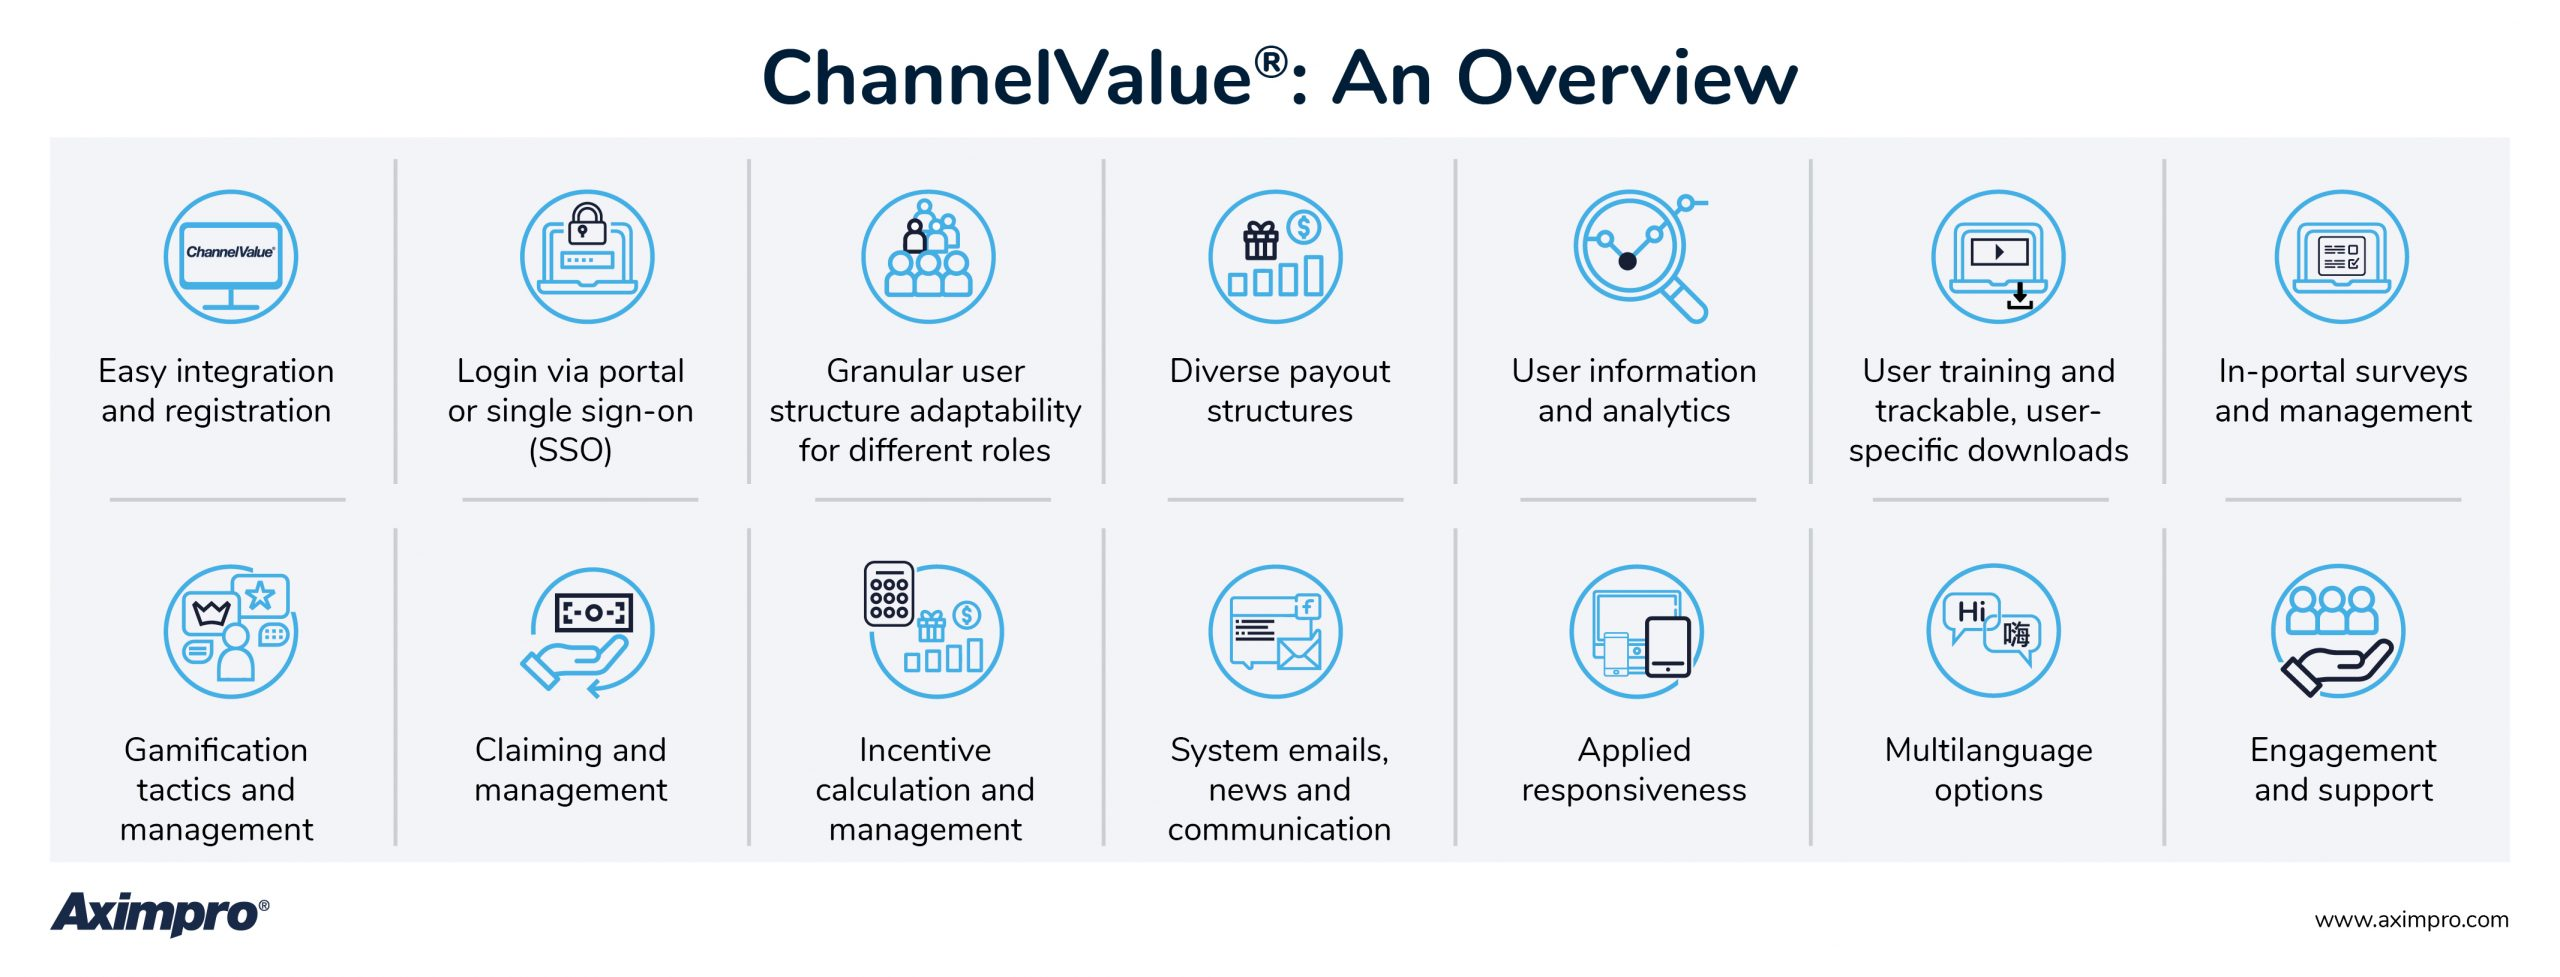 Aximpro ChannelValue® Partner Enablement & Loyalty Software